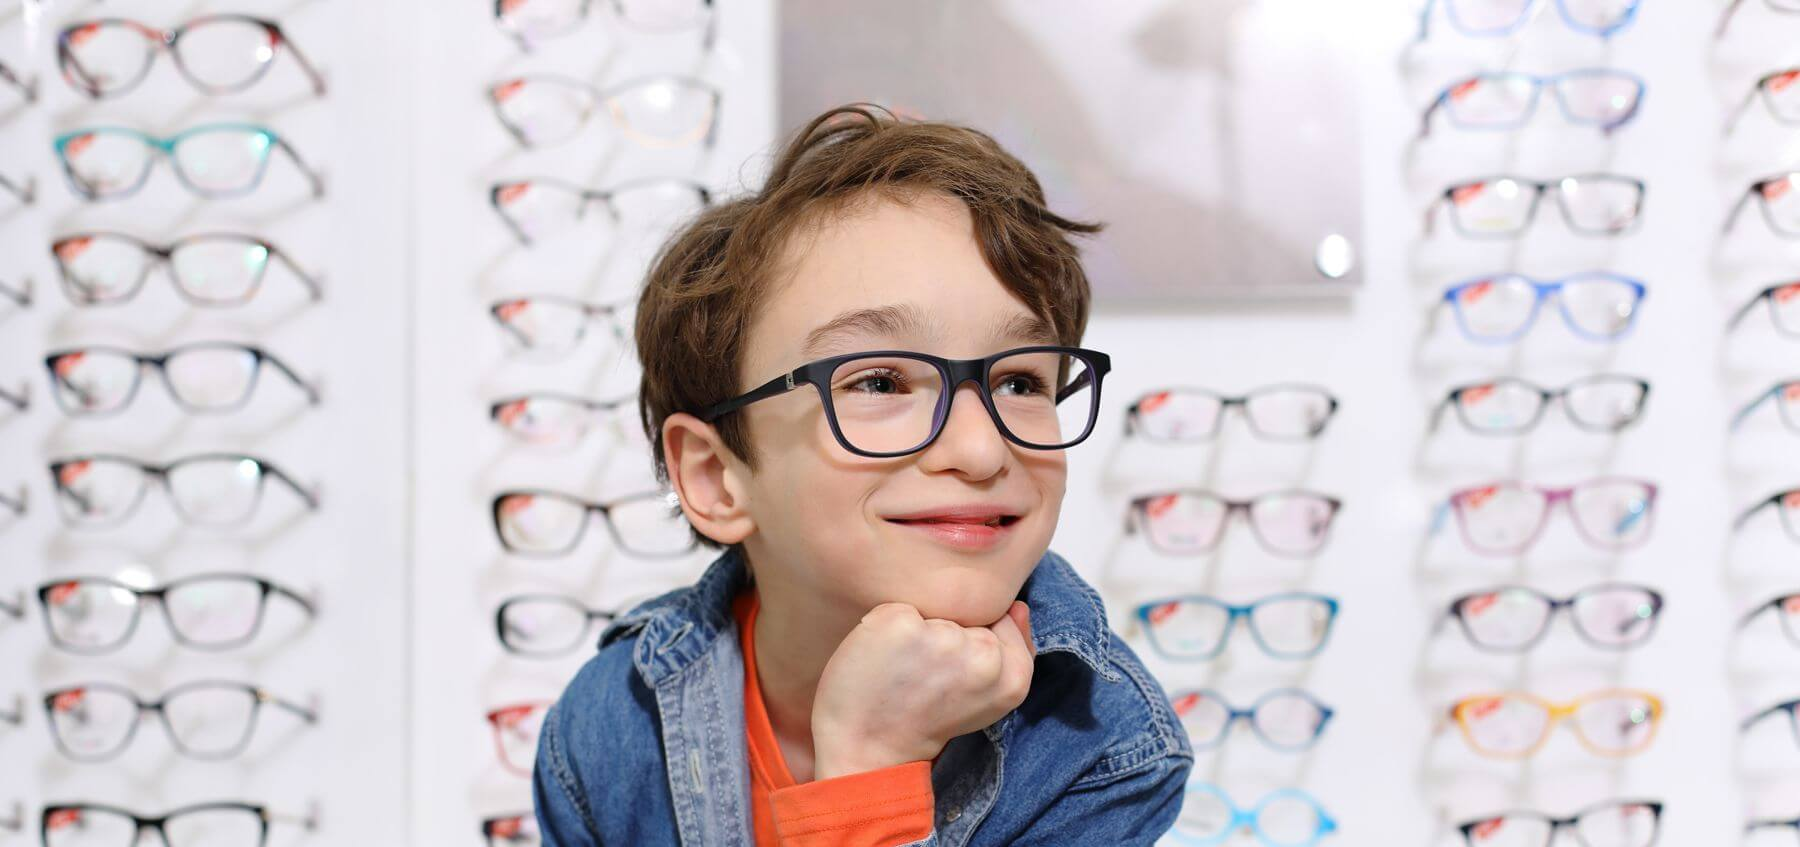 Envision Optical Boy wearing glasses smiling